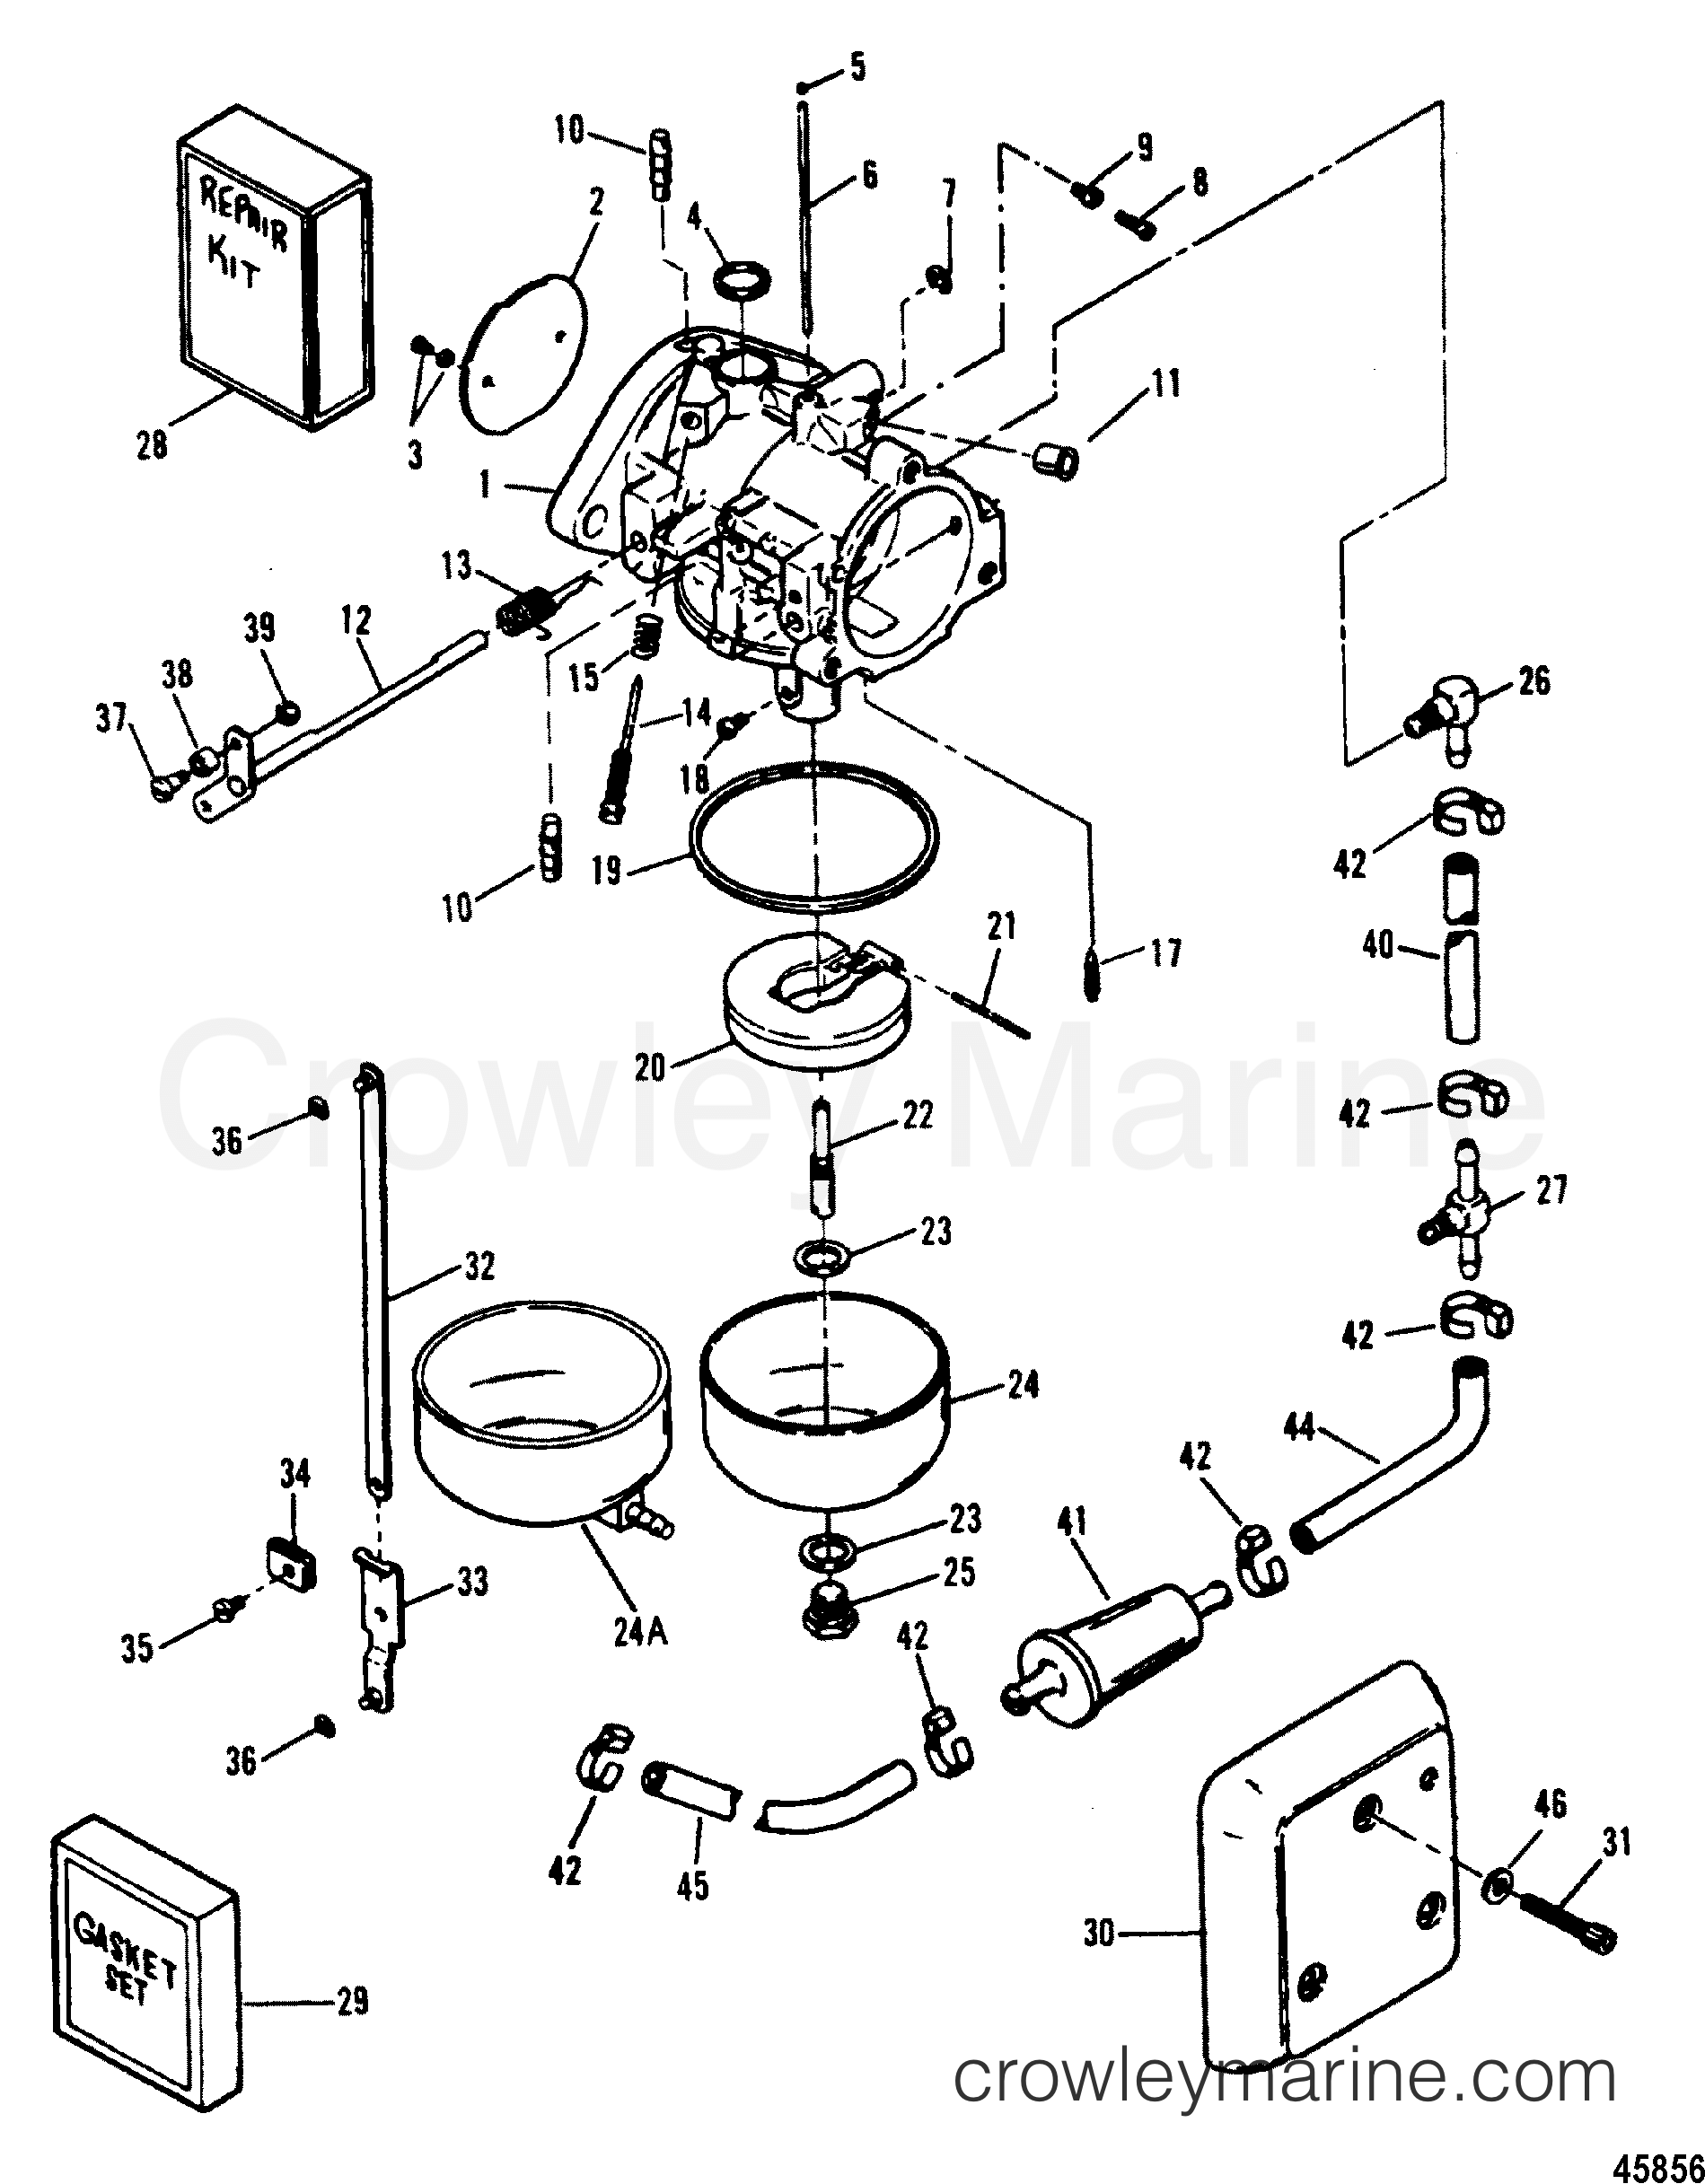 hight resolution of wiring diagram for 50 hp mercury outboard wiring diagram mercury carburetor diagram mercury force 40 hp wiring diagram